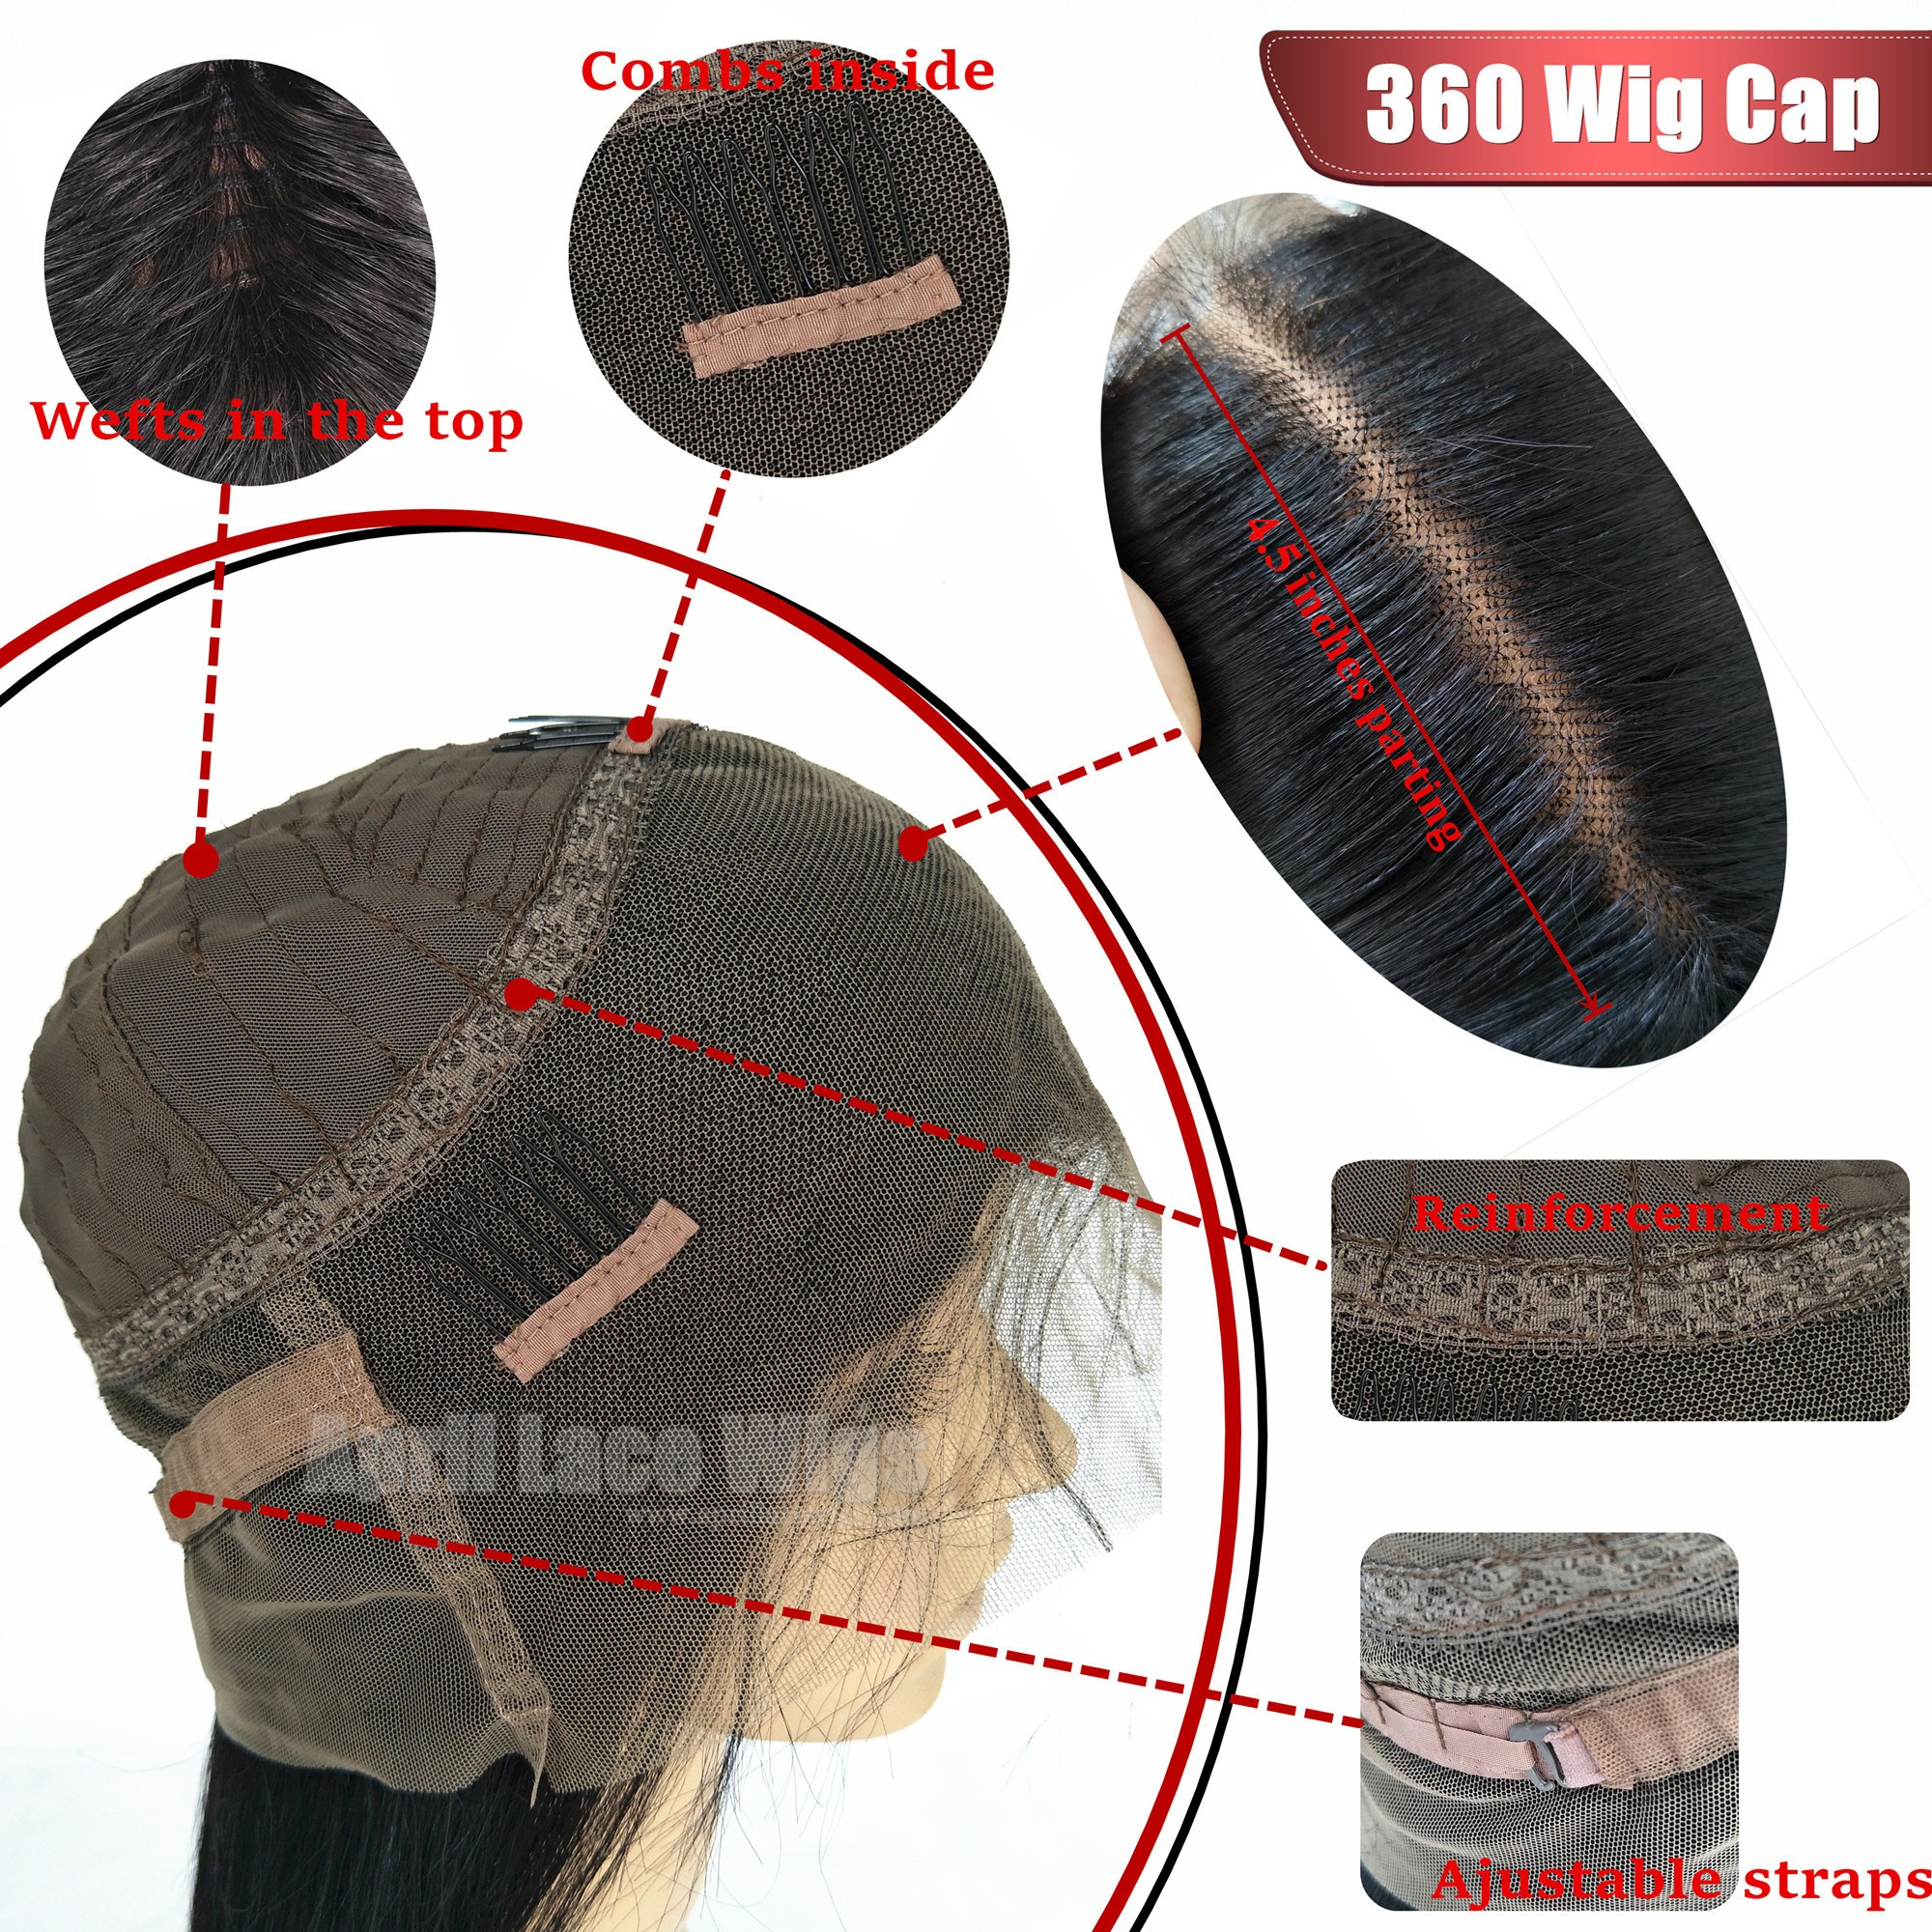 bang wave gluelsess lace wig on sale 50% off only $139